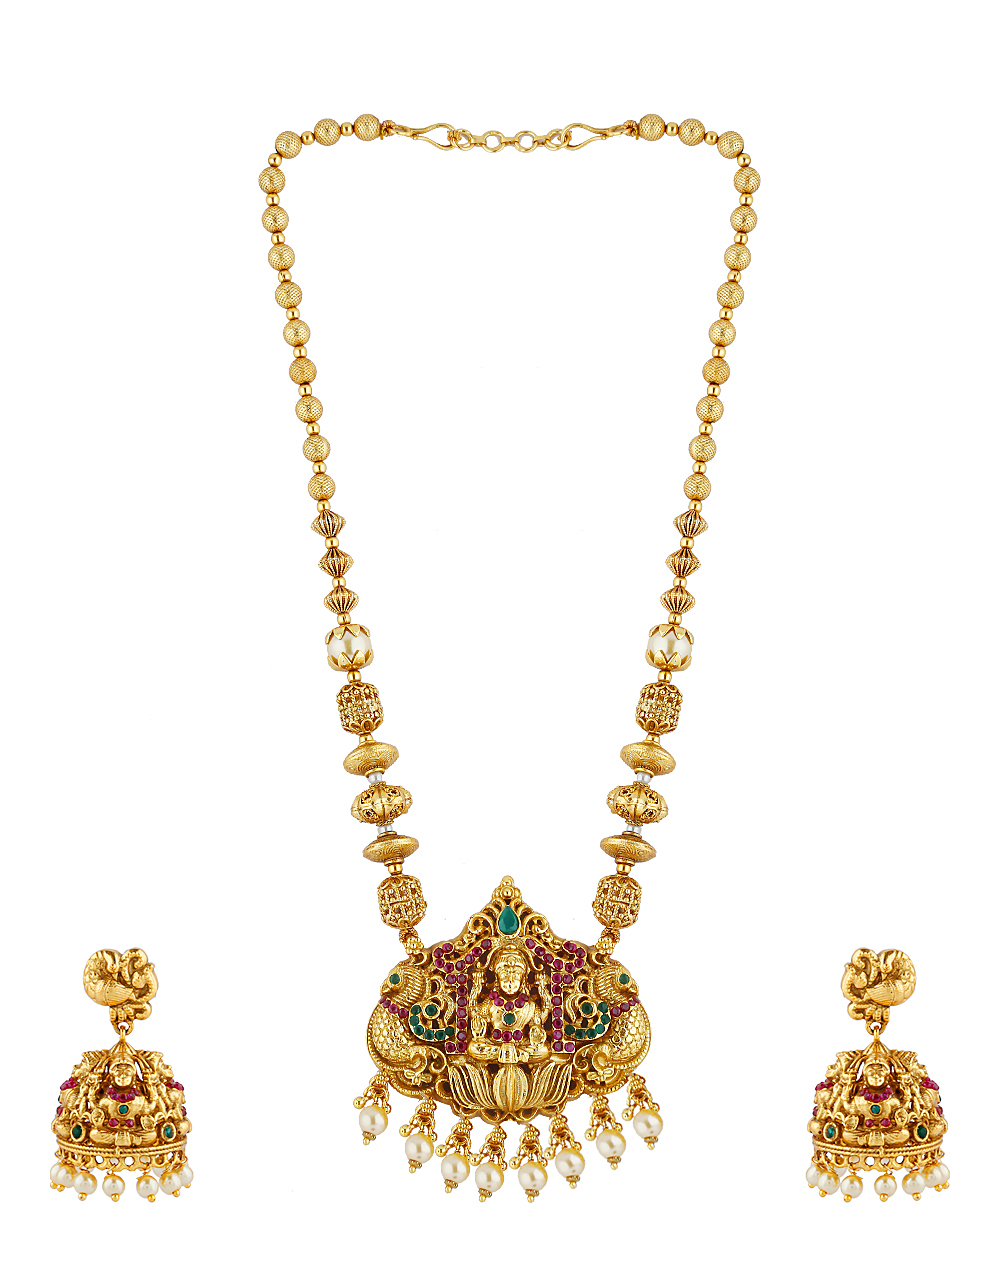 Temple Design Pink Stone And Matte Gold Finish Pendant Set For Women